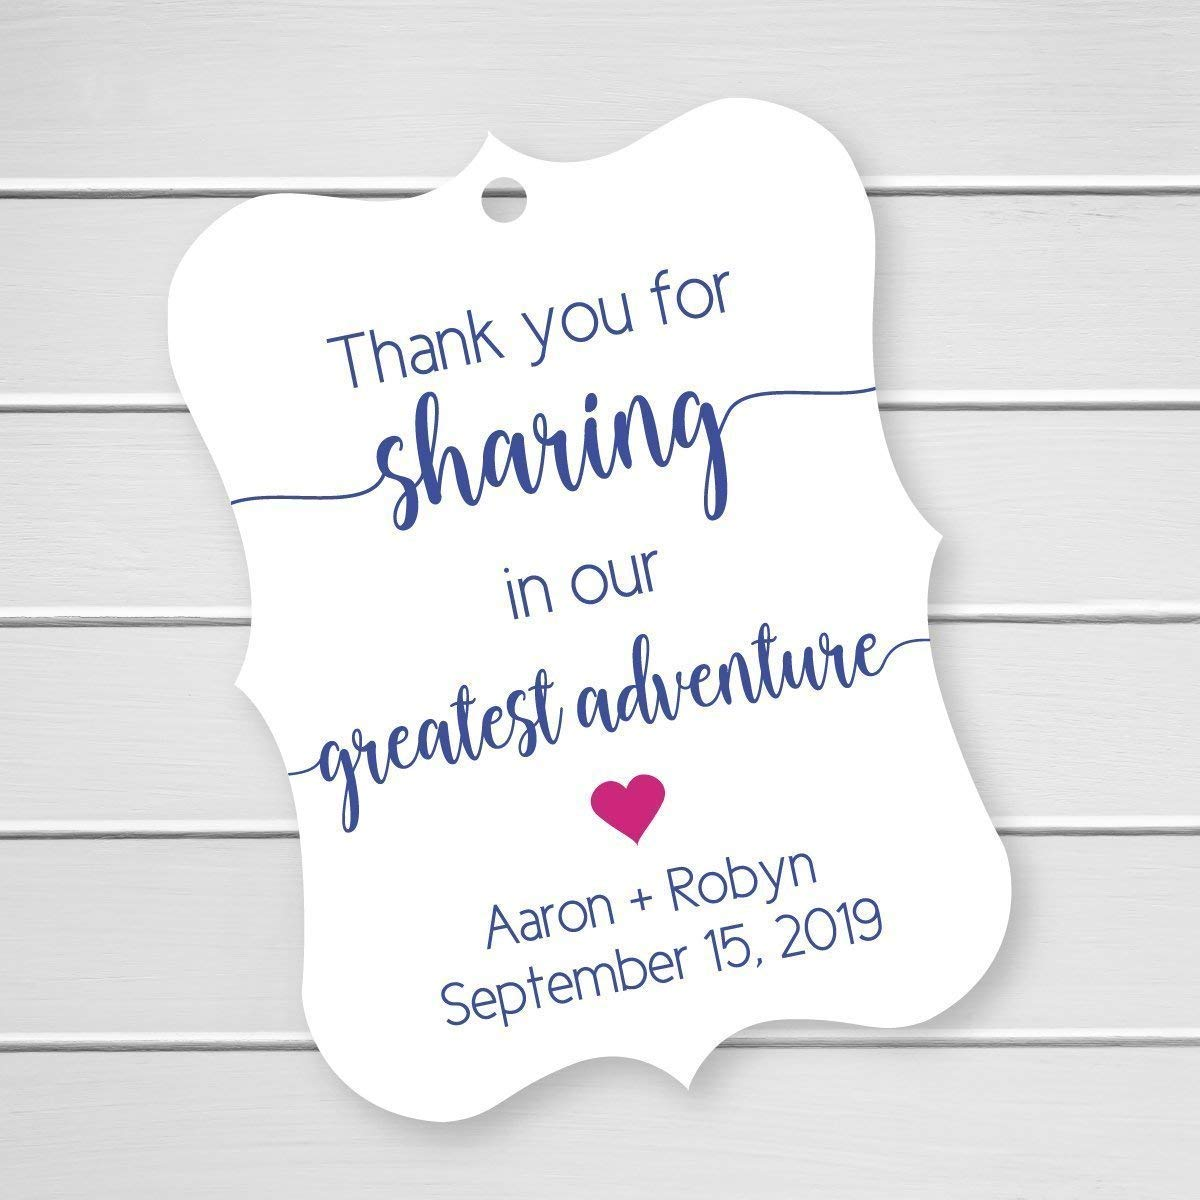 Wedding Reception Favors Neoprene Can Coolers Thank You Wedding Favors Adventure Wedding Wedding Thank You Gifts Guest Gifts 1514